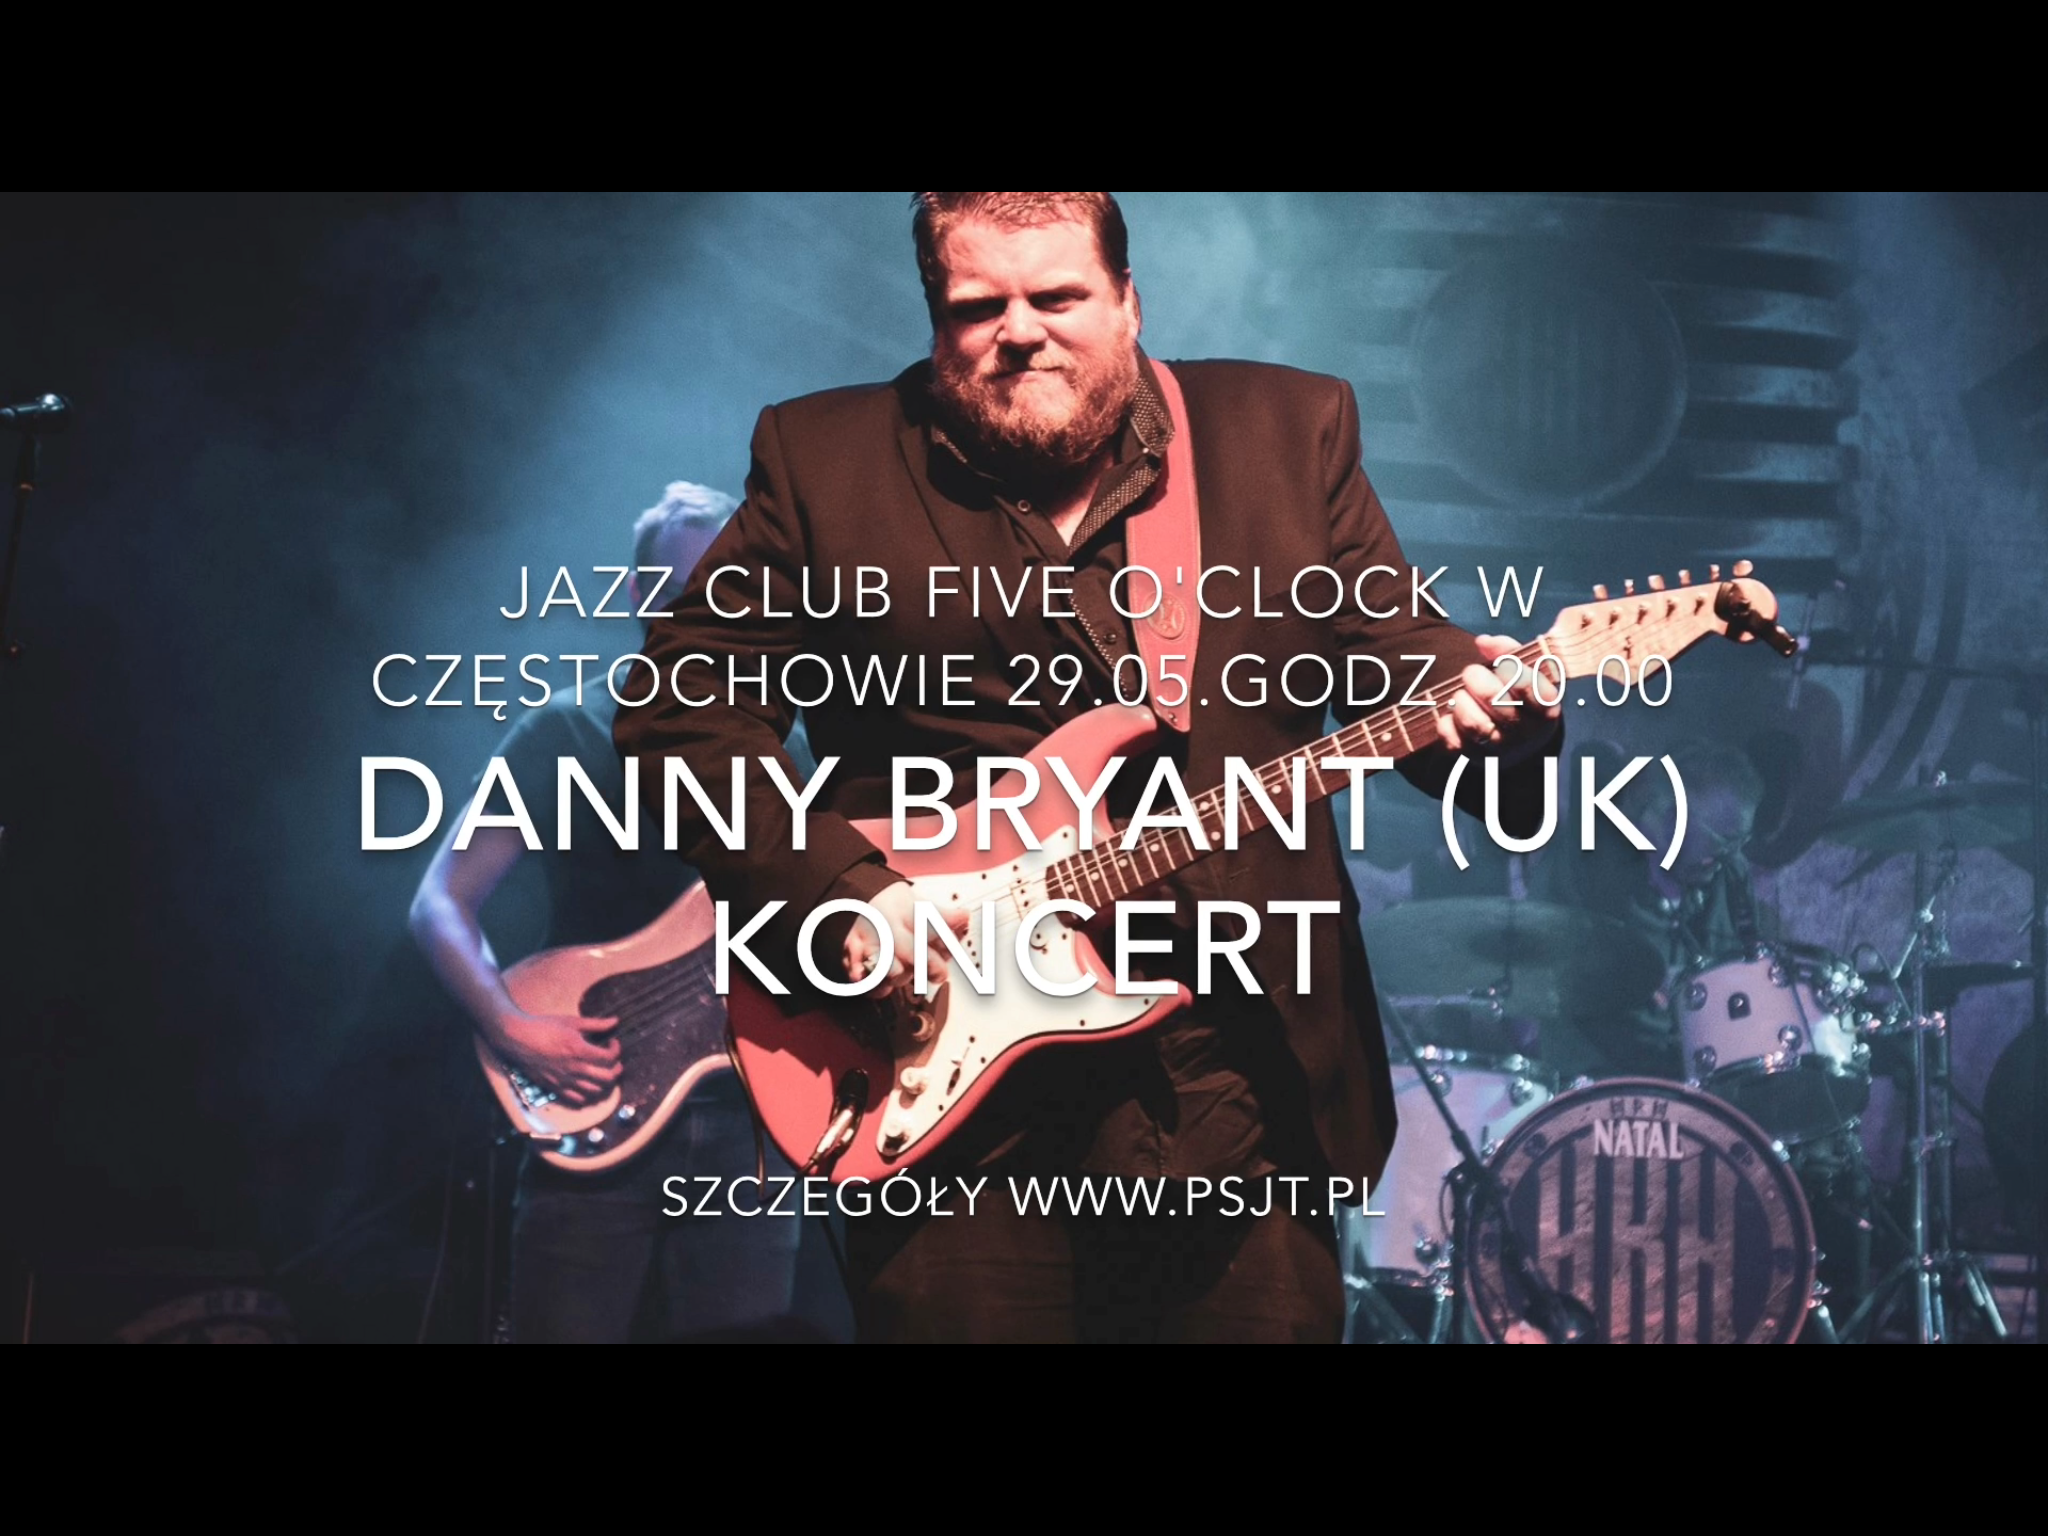 Danny Bryant (UK) w Jazz Club Five O`Clock 29.05. godz. 20.00